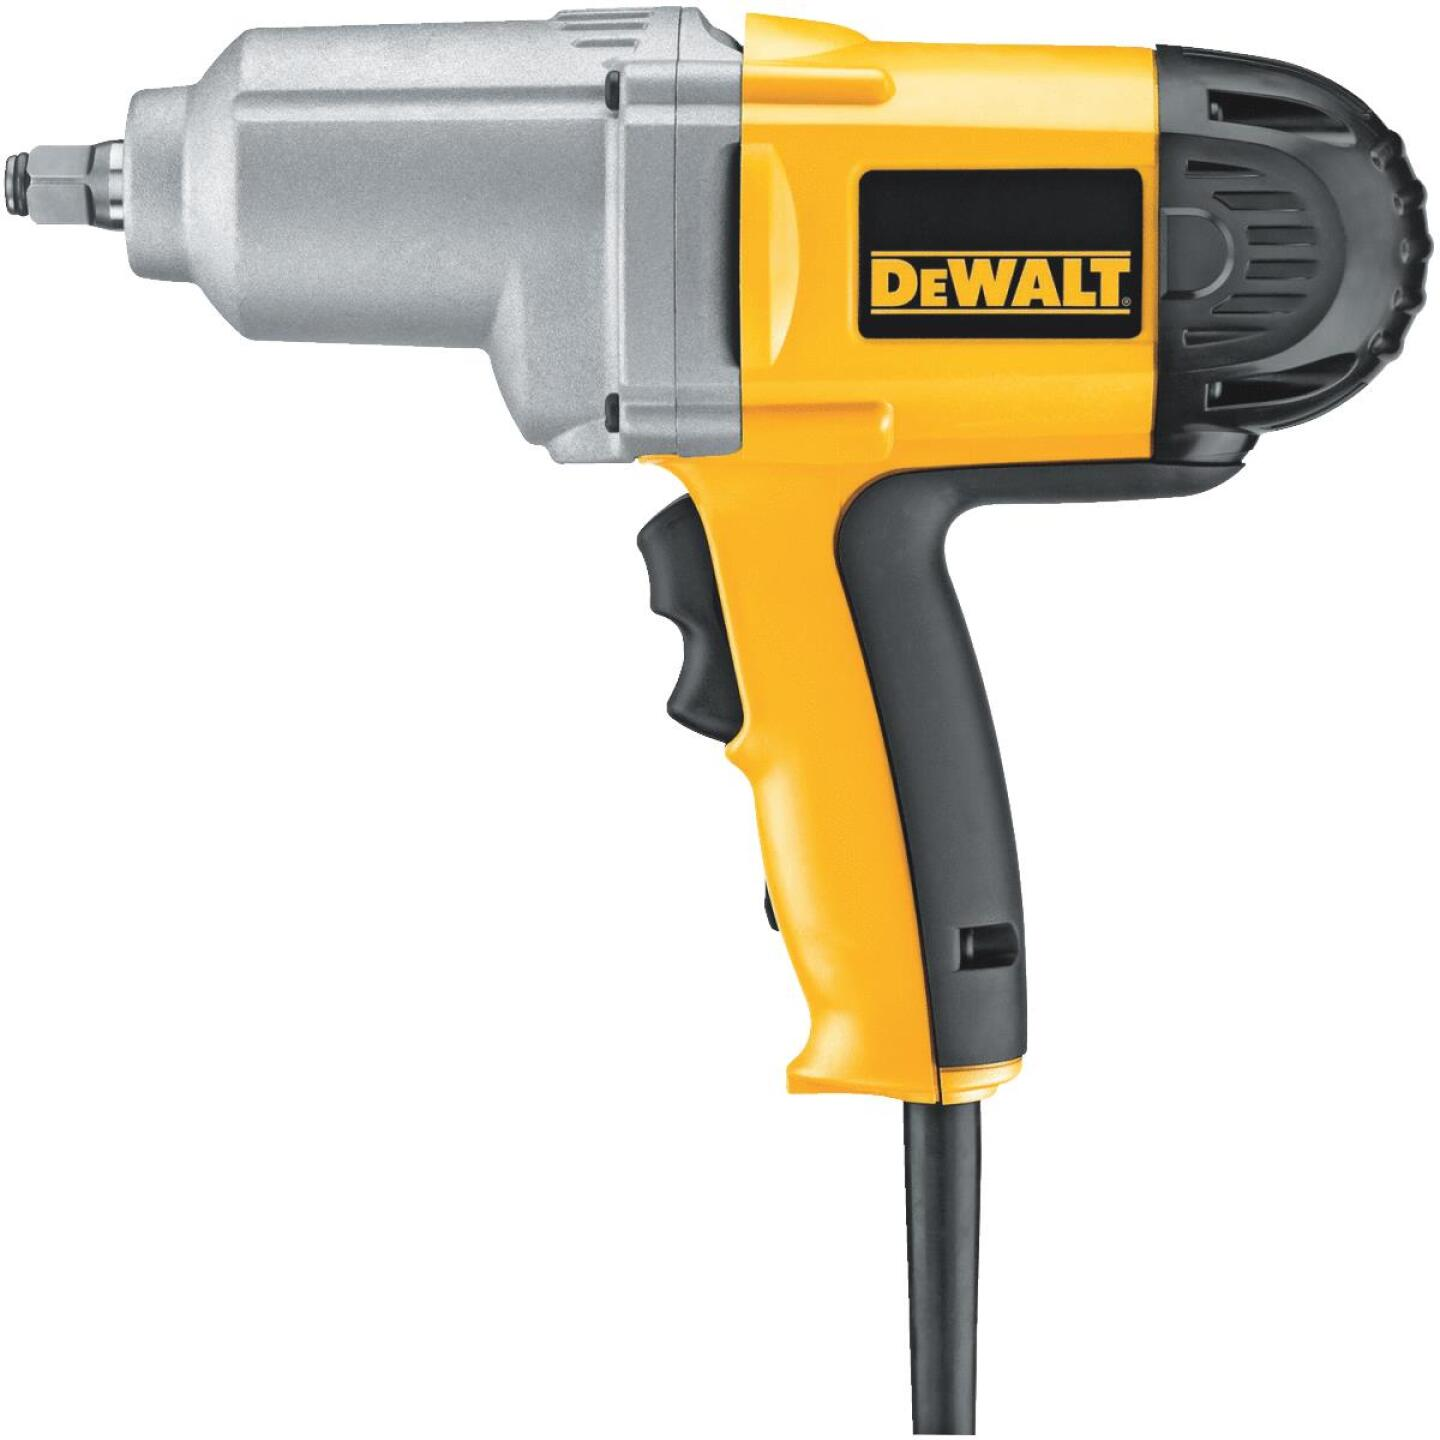 DeWalt 1/2 In. Impact Wrench with Hog Ring Anvil Image 1